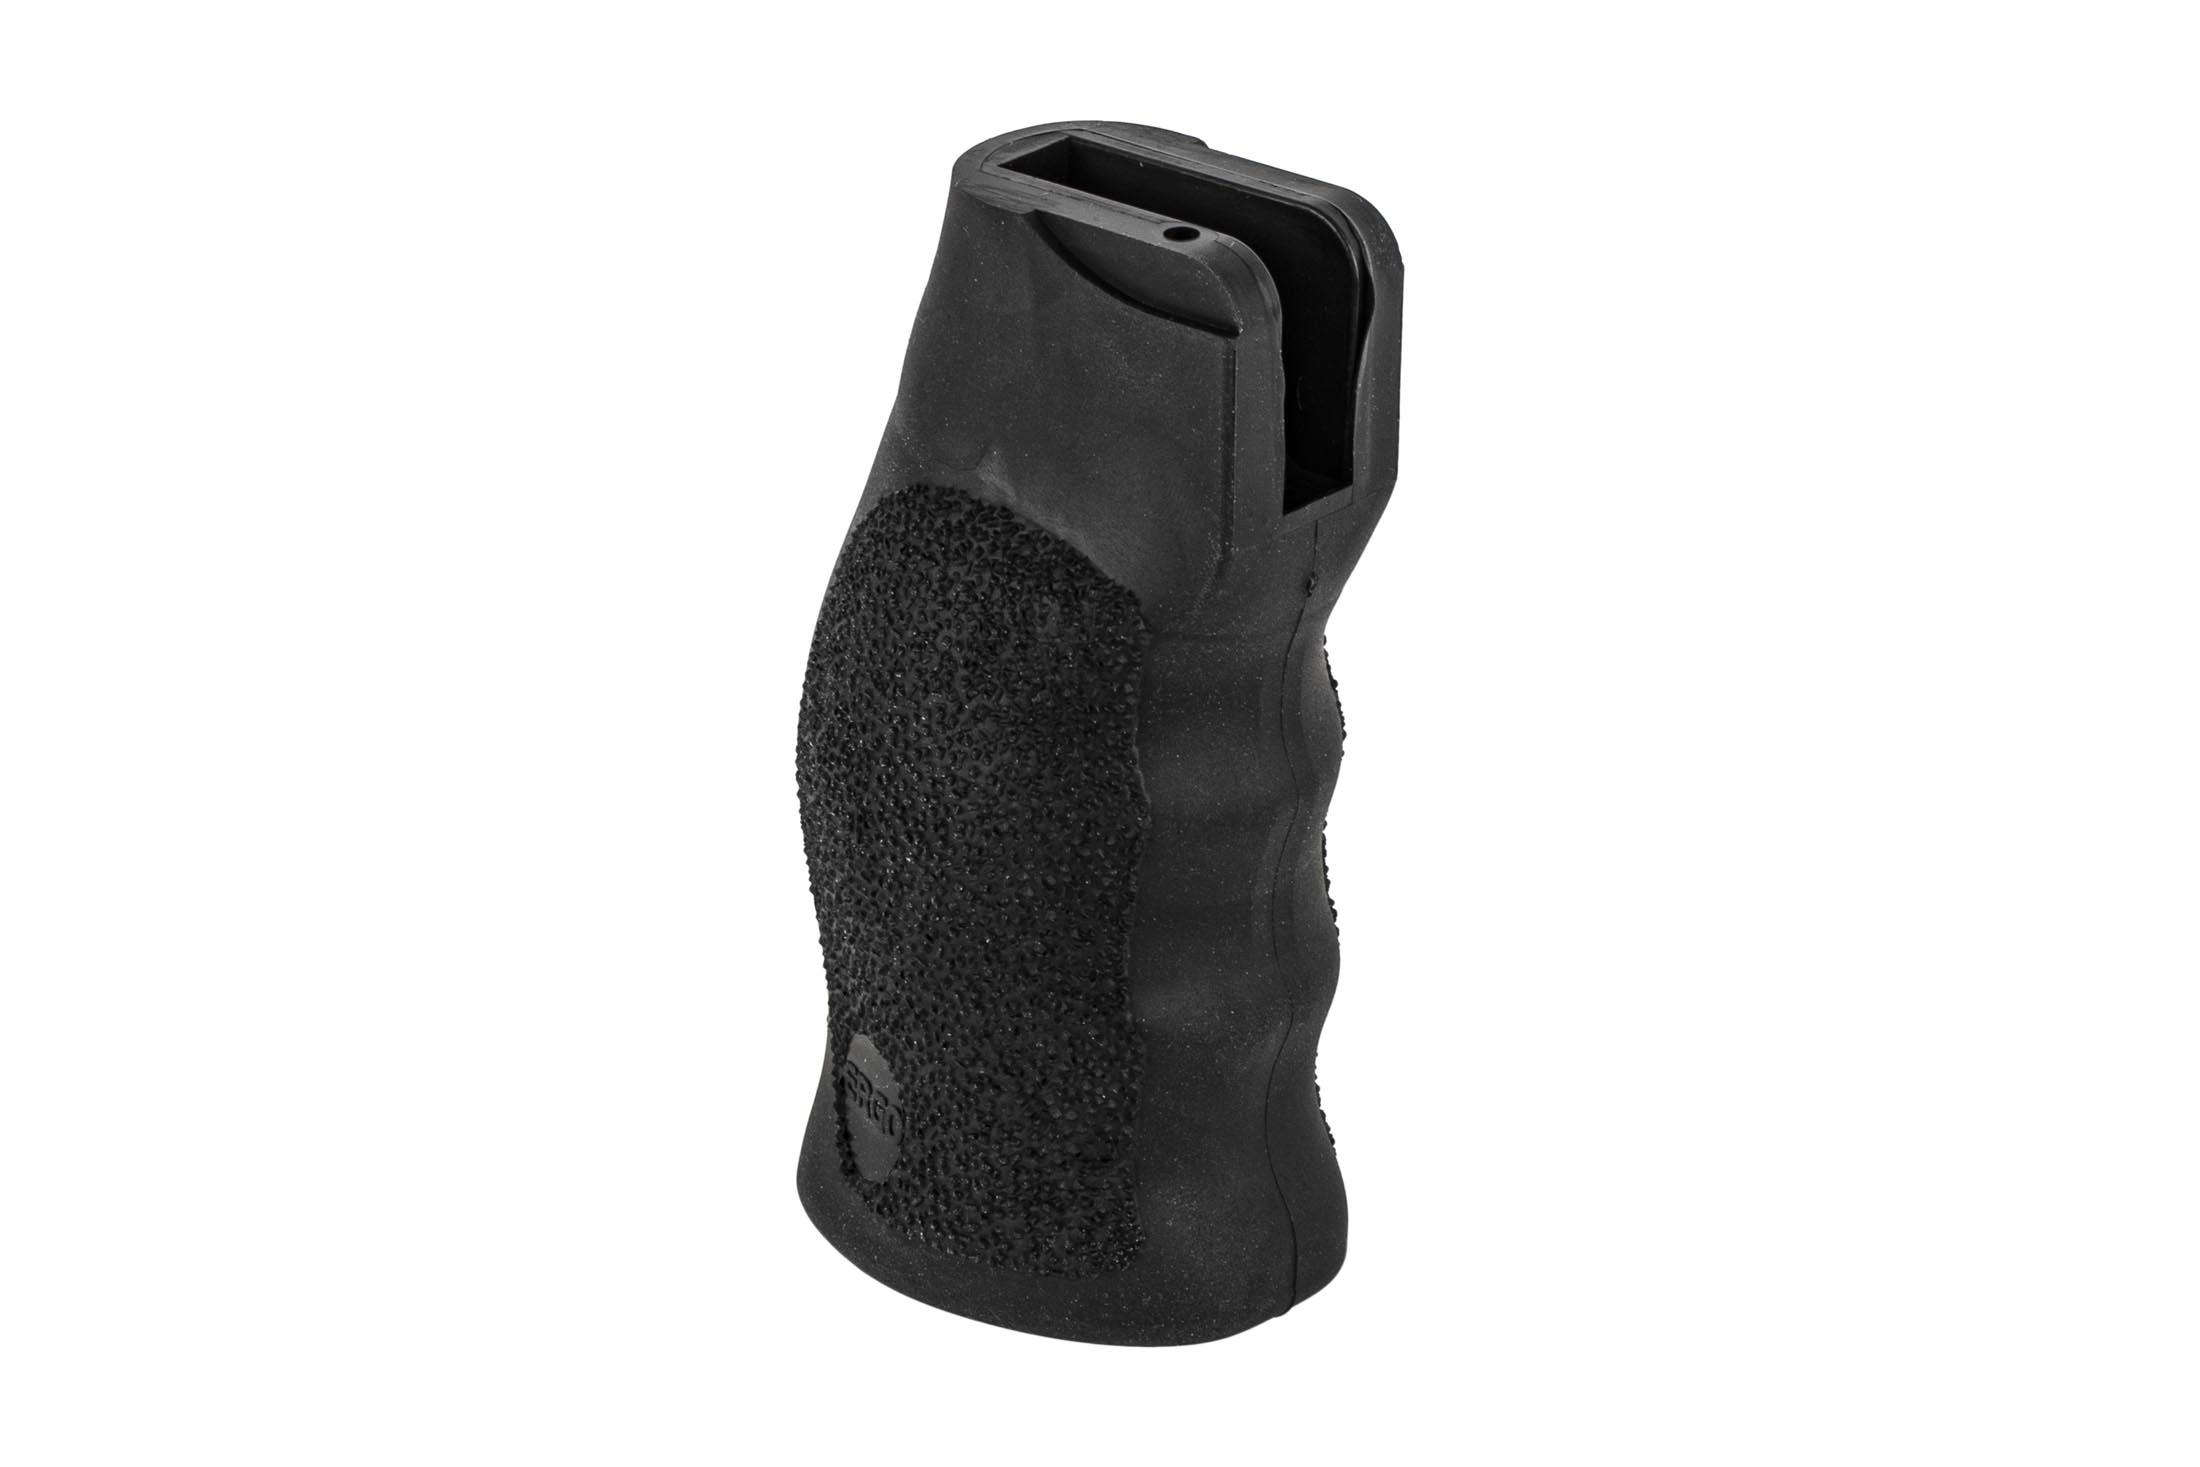 ERGO Grips TDX-0 flat top deluxe zero angle precision suregrip in black is now available for the AR-15 and AR-308